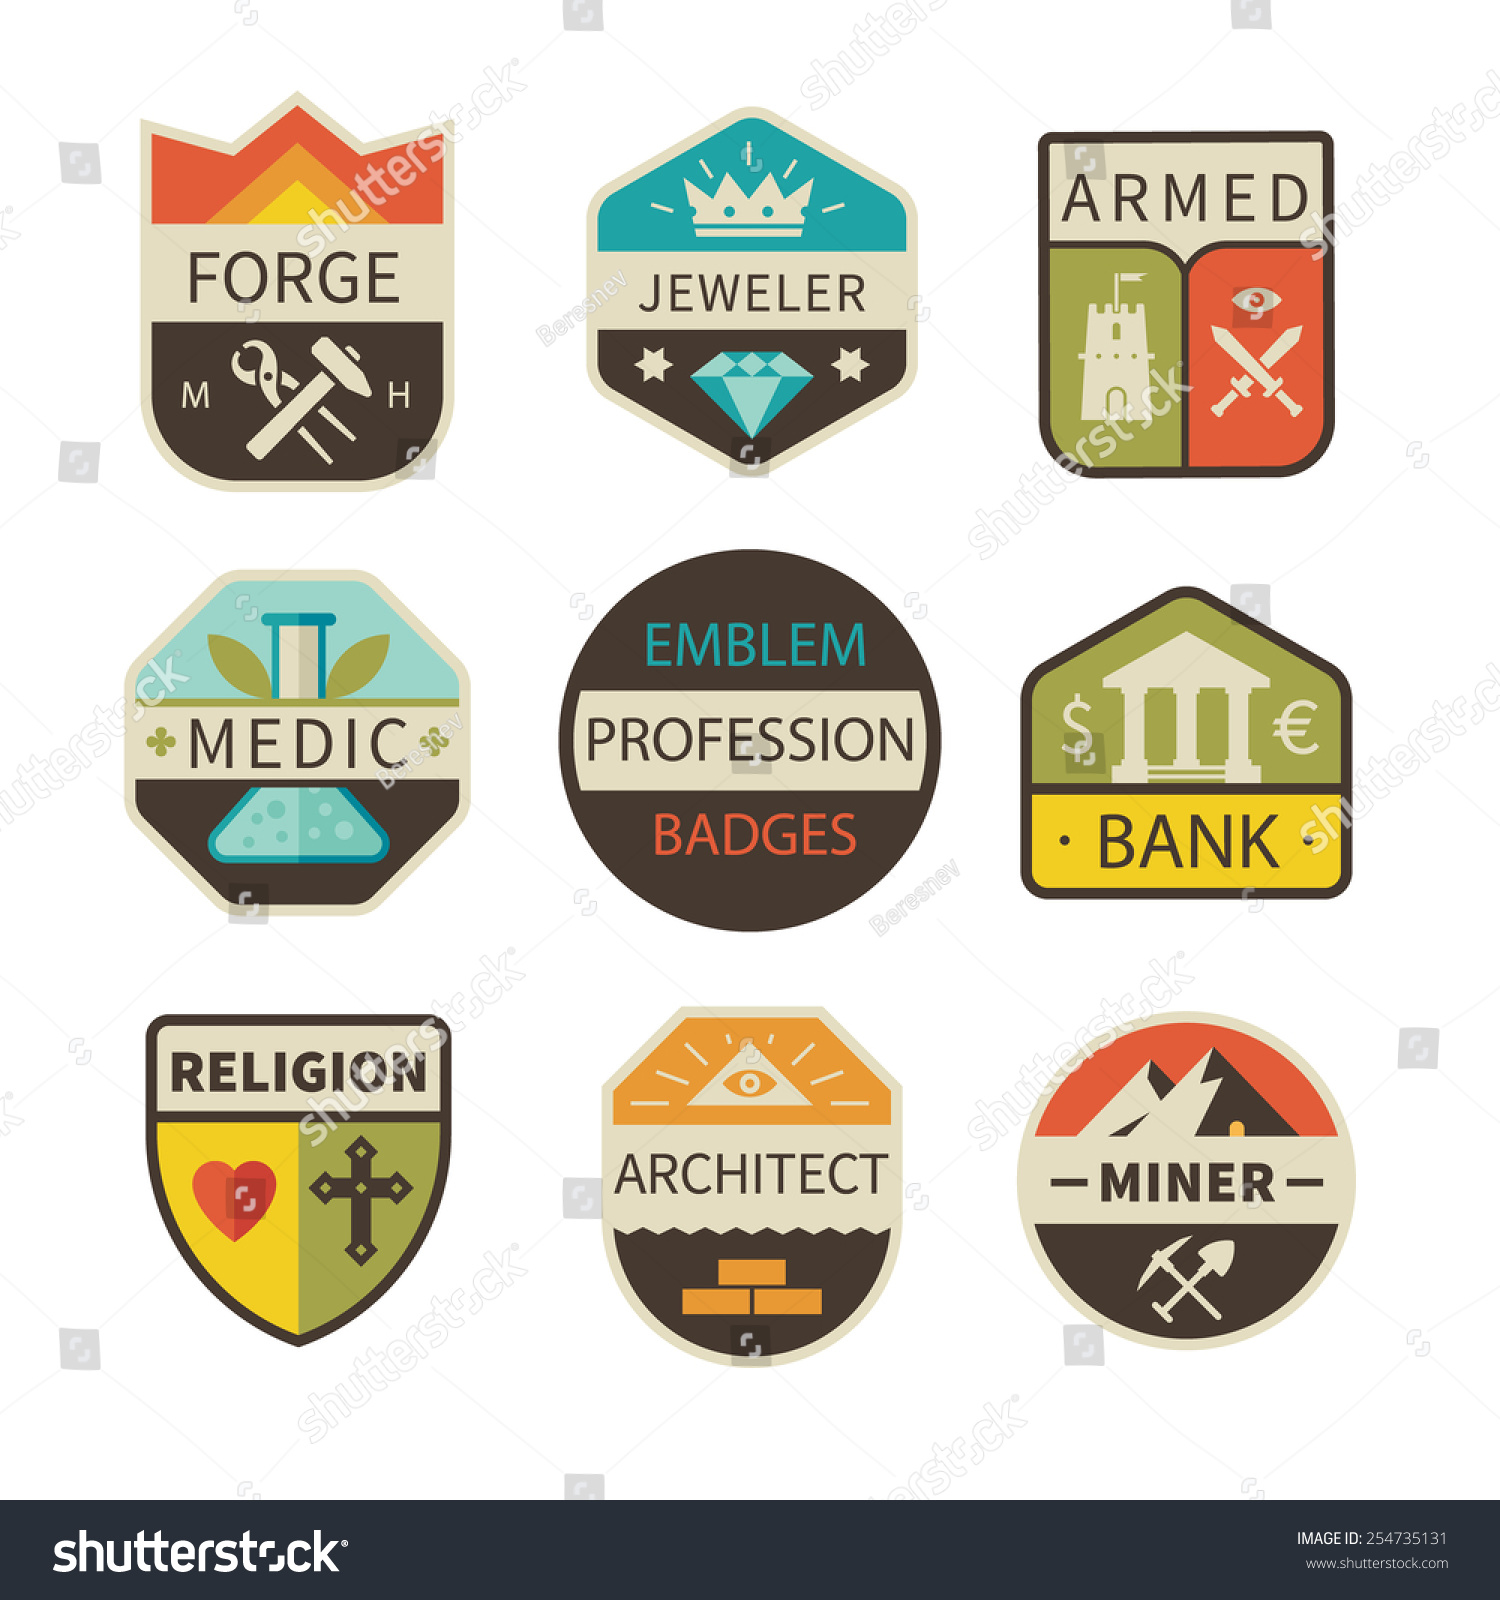 Professional Logos Badges Forge Jeweler Armed Stock Vector ...